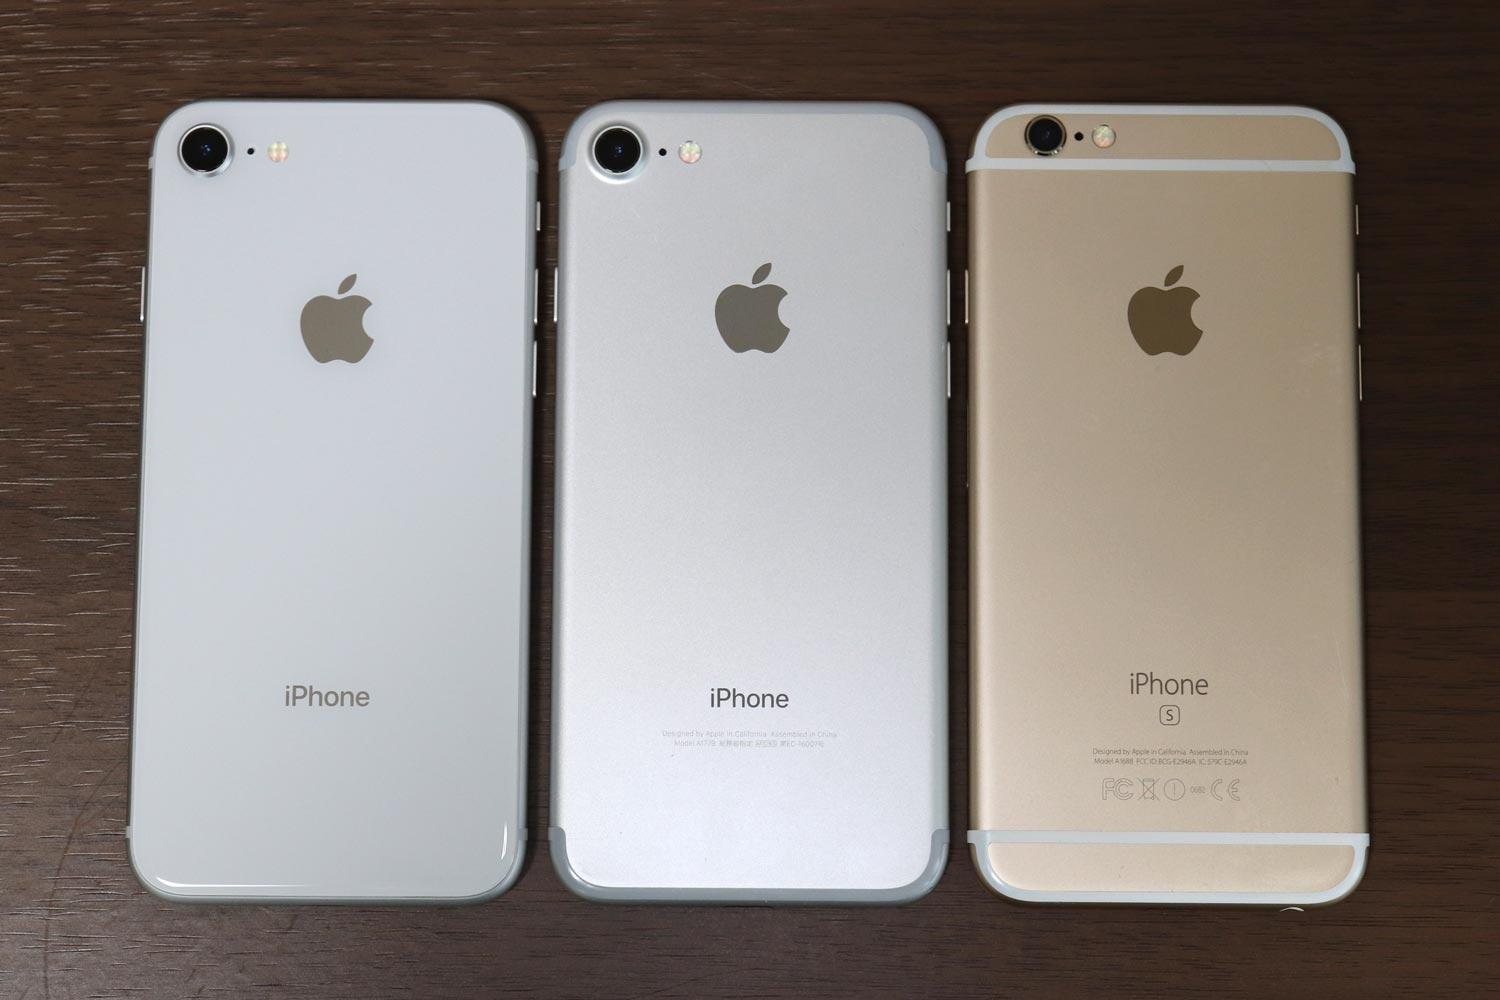 iPhone8 vs iPhone7 vs iPhone6s